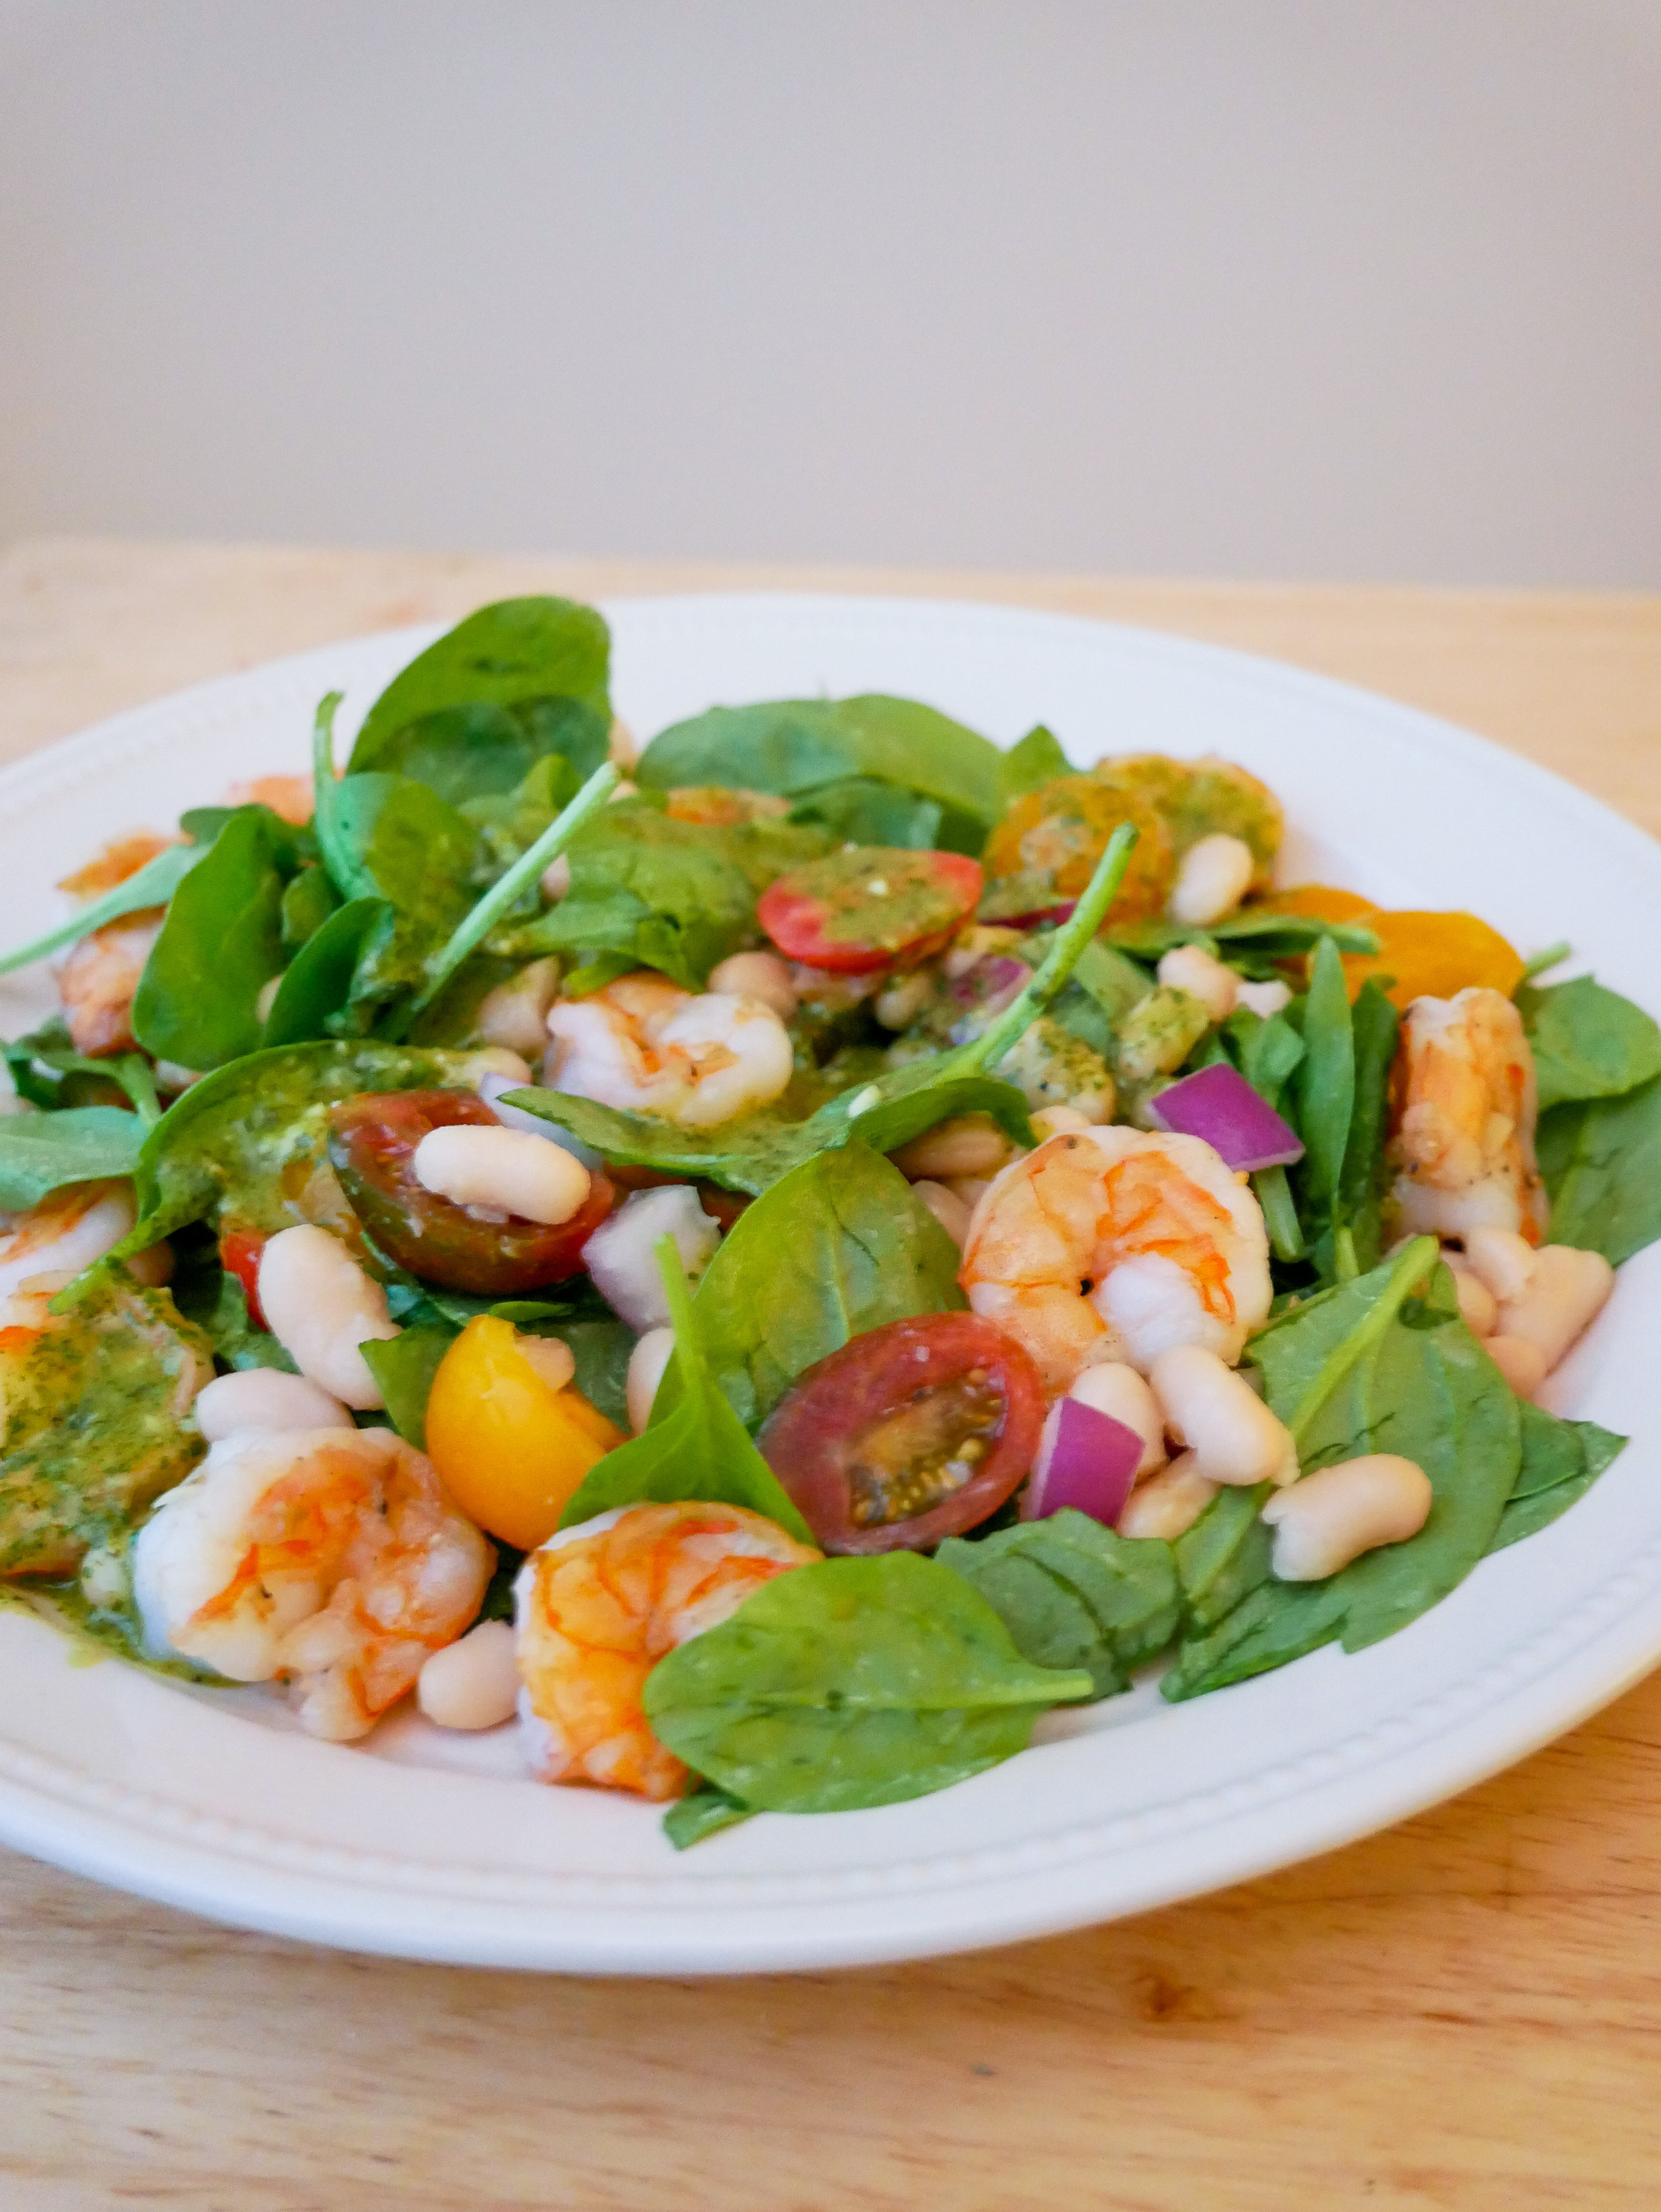 Spinach salad with shrimp, cannellini beans and a cilantro garlic lime vinaigrette